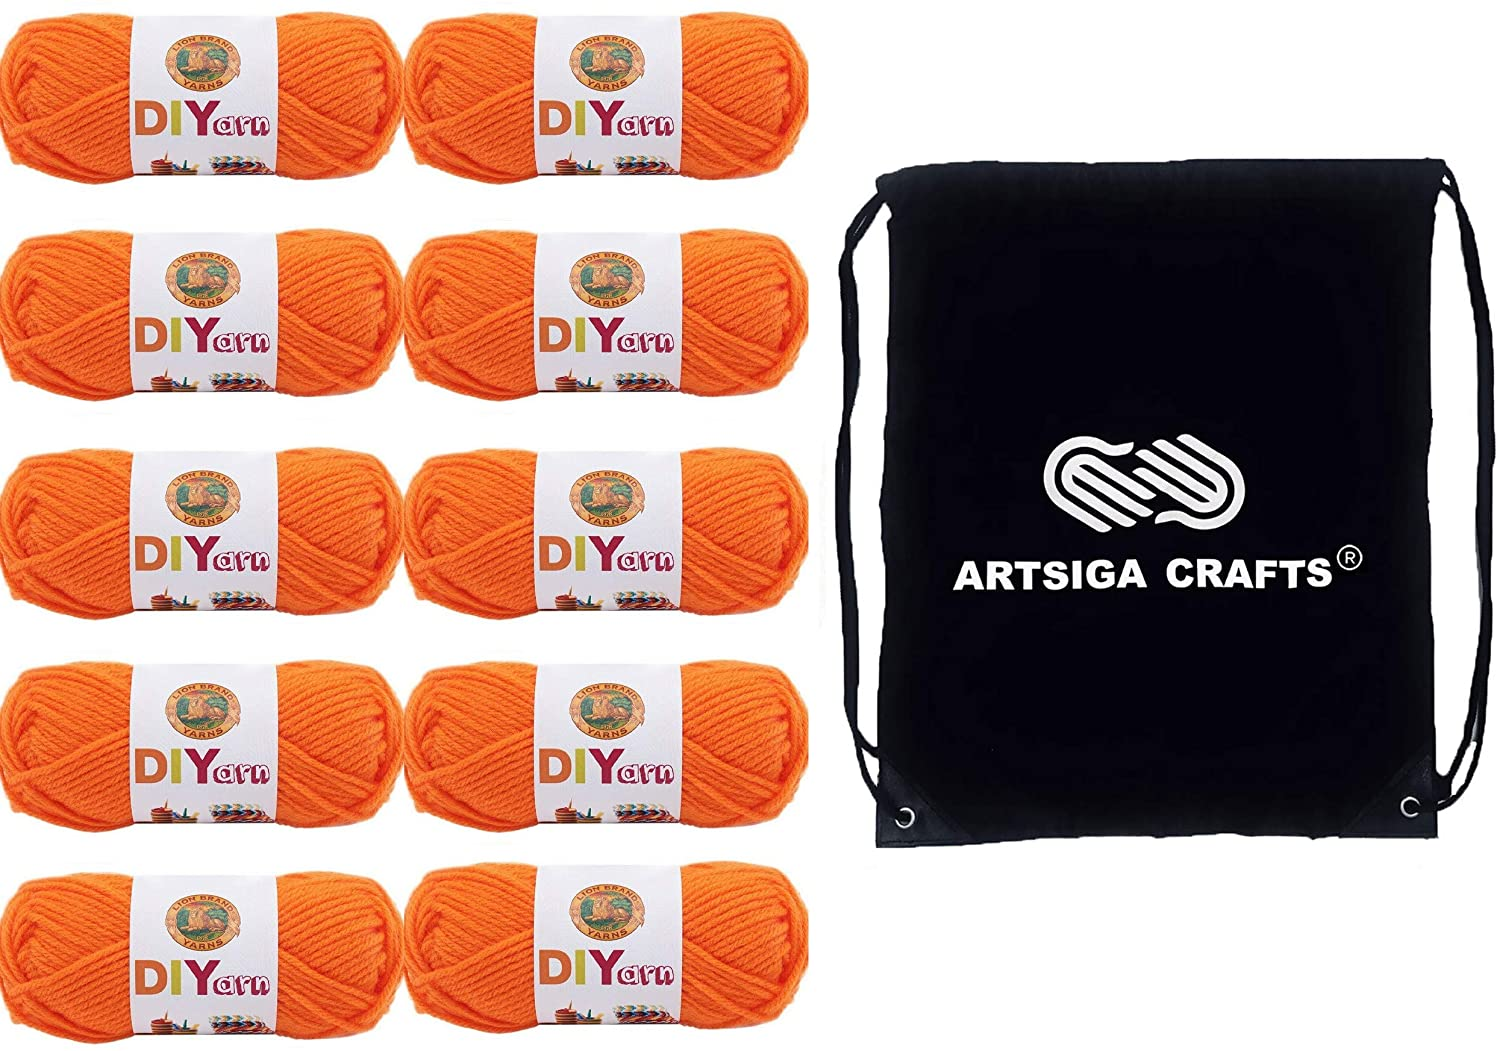 Lion Brand Knitting Yarn DIYarn Orange 10-Skein Factory Pack (Same Dye Lot) 205-133 Bundle with 1 Artsiga Crafts Project Bag